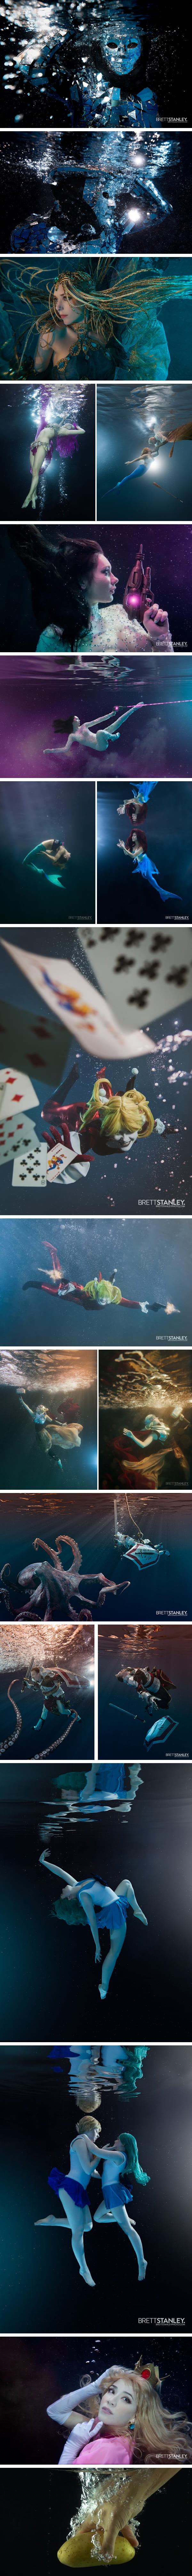 Cosplayers Team Up With Underwater Photographer To Create Dreamlike Images